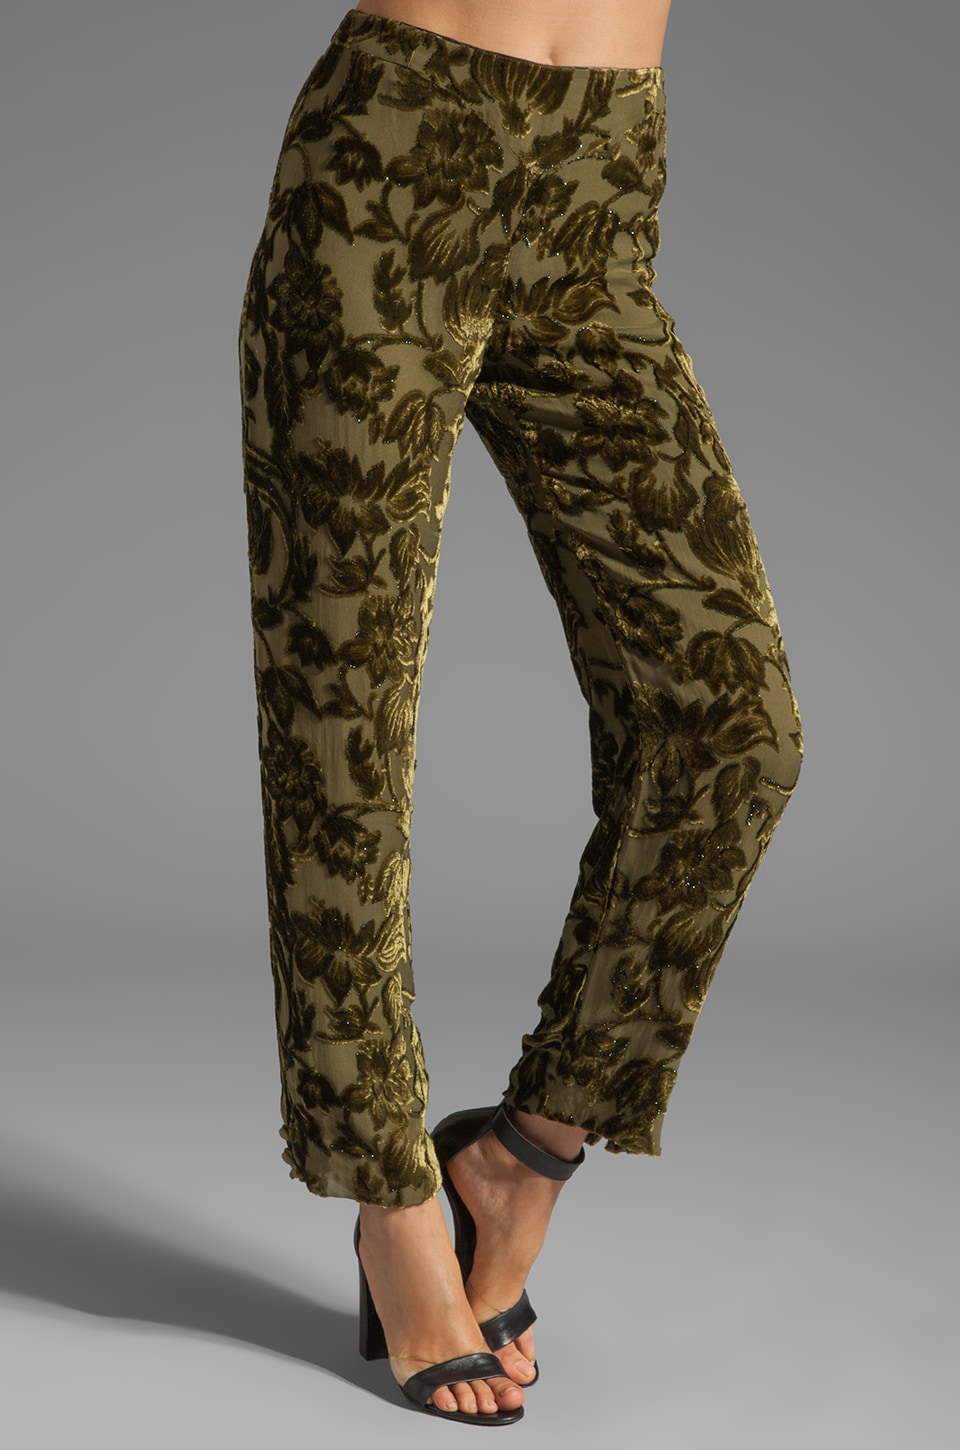 BLK DNM Pant 24 in Dark Moss Green